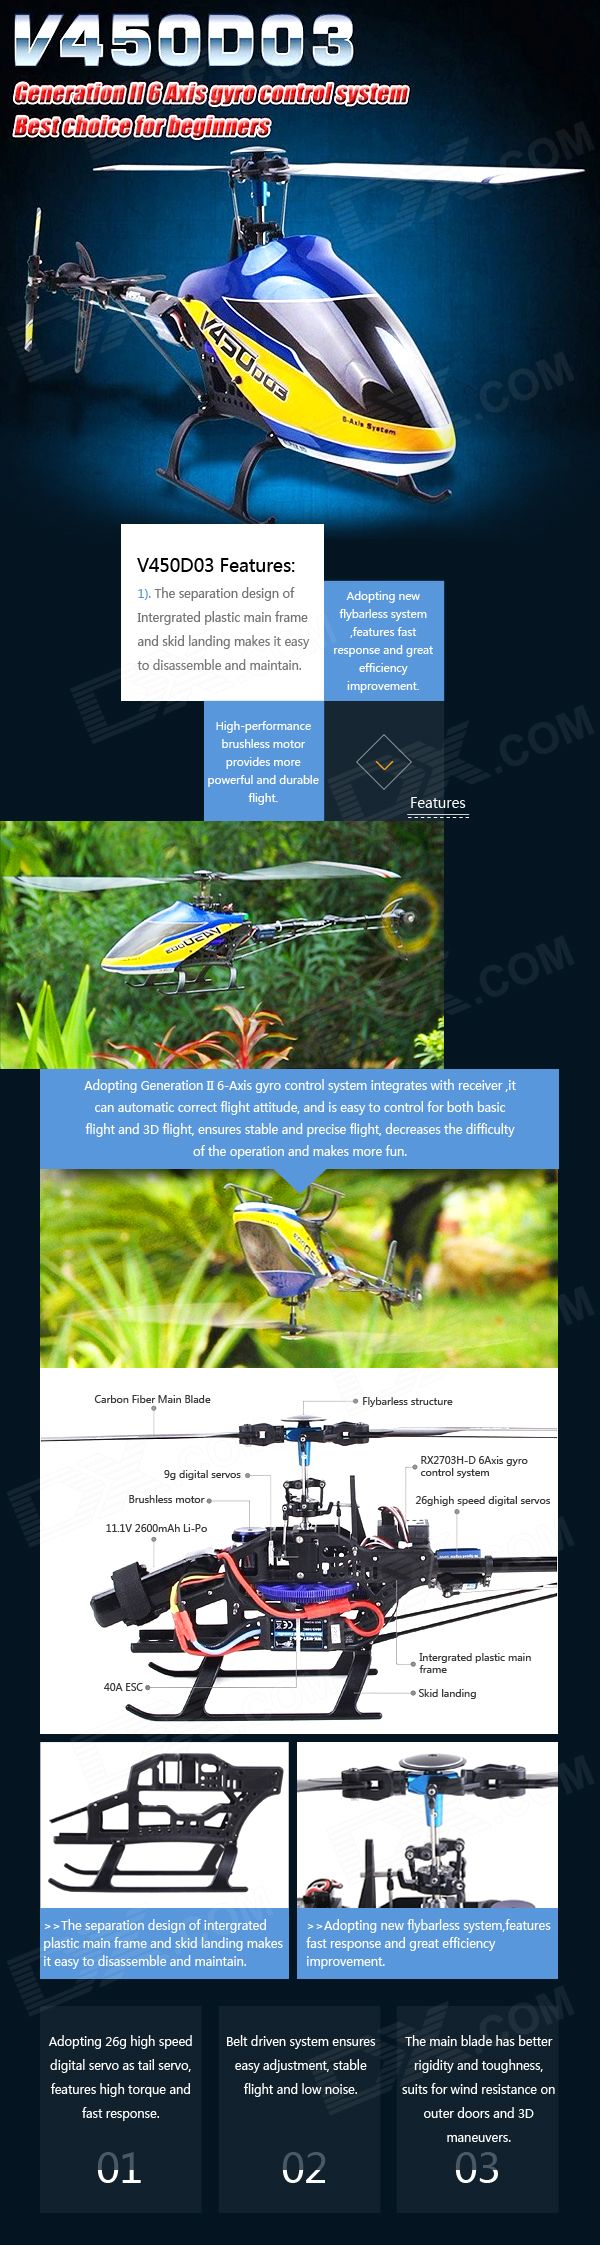 Walkera Rechargeable 6-CH Radio Control 3D Flight Stunt R/C Helicopter - Blue